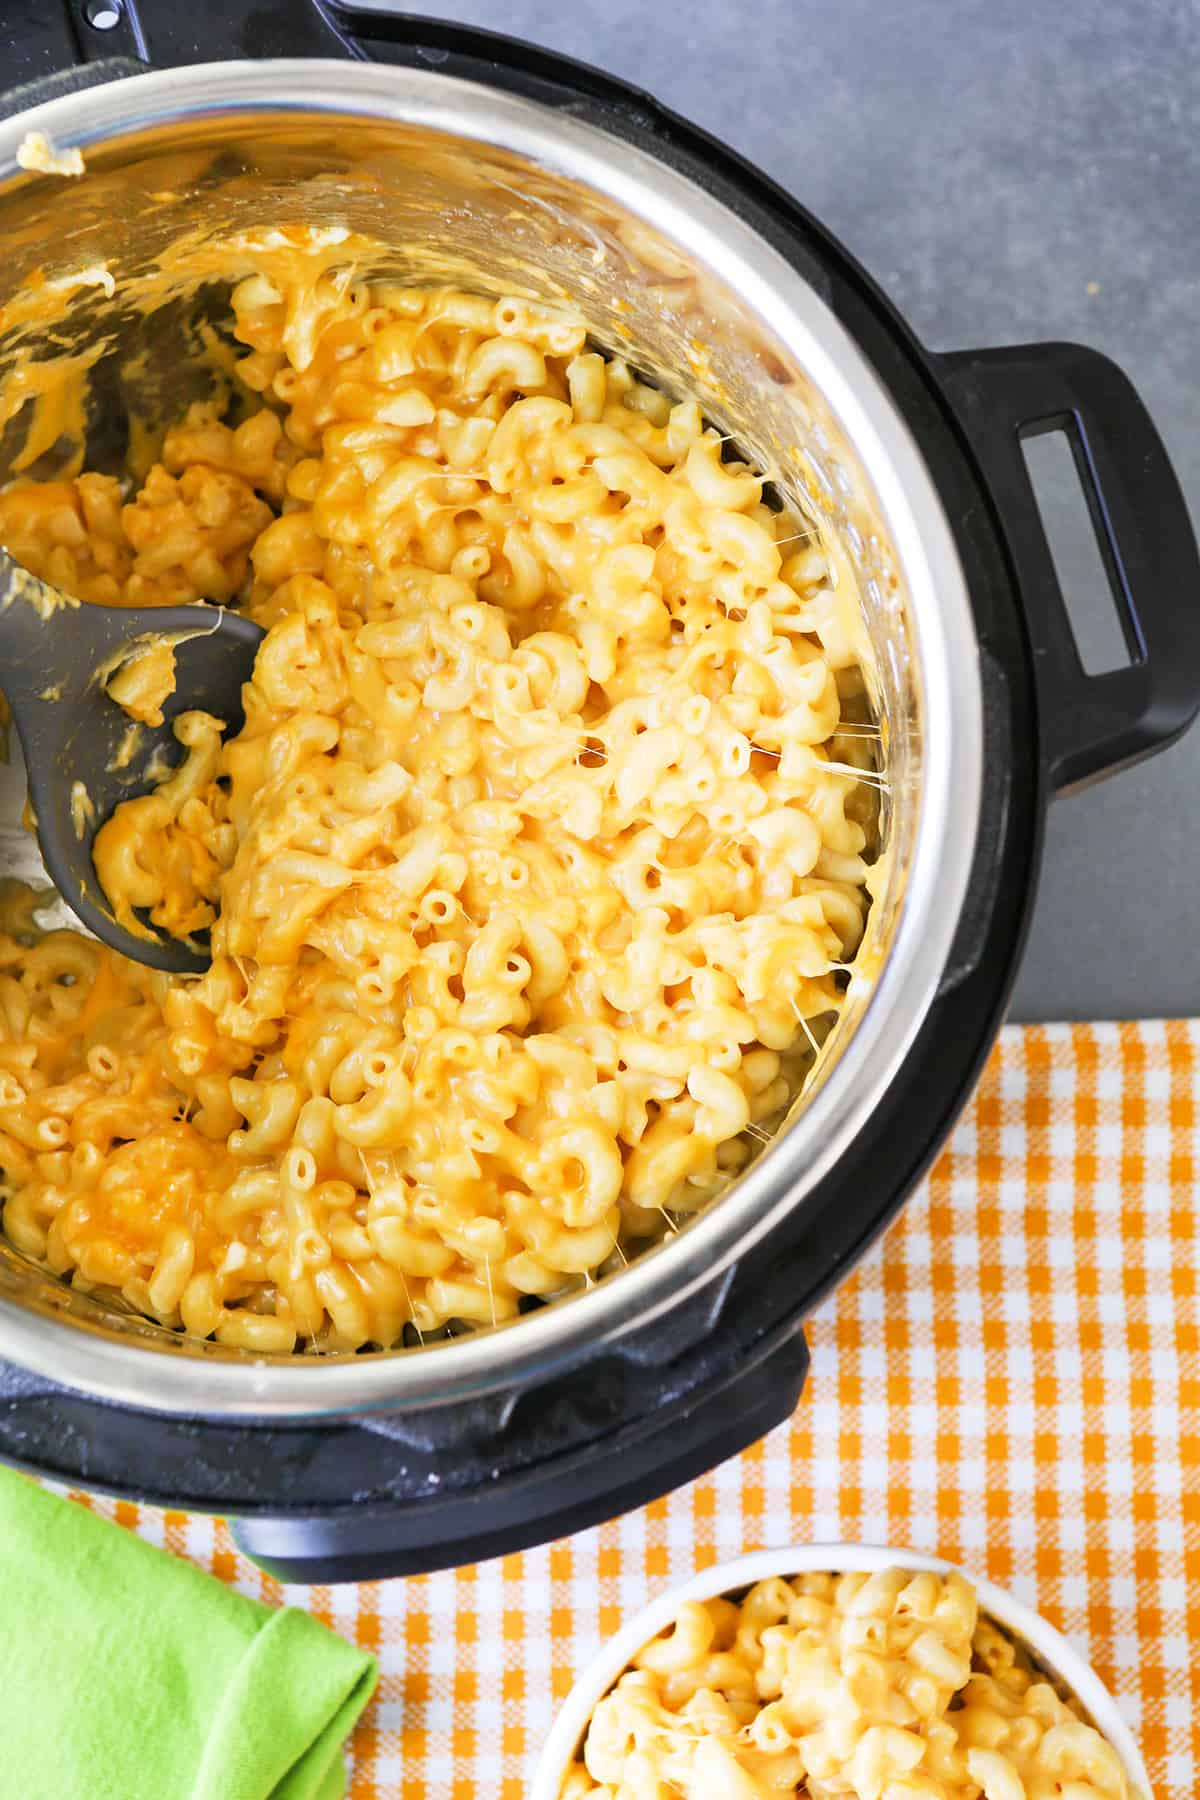 Instant Pot full of mac and cheese with bowl next to it.